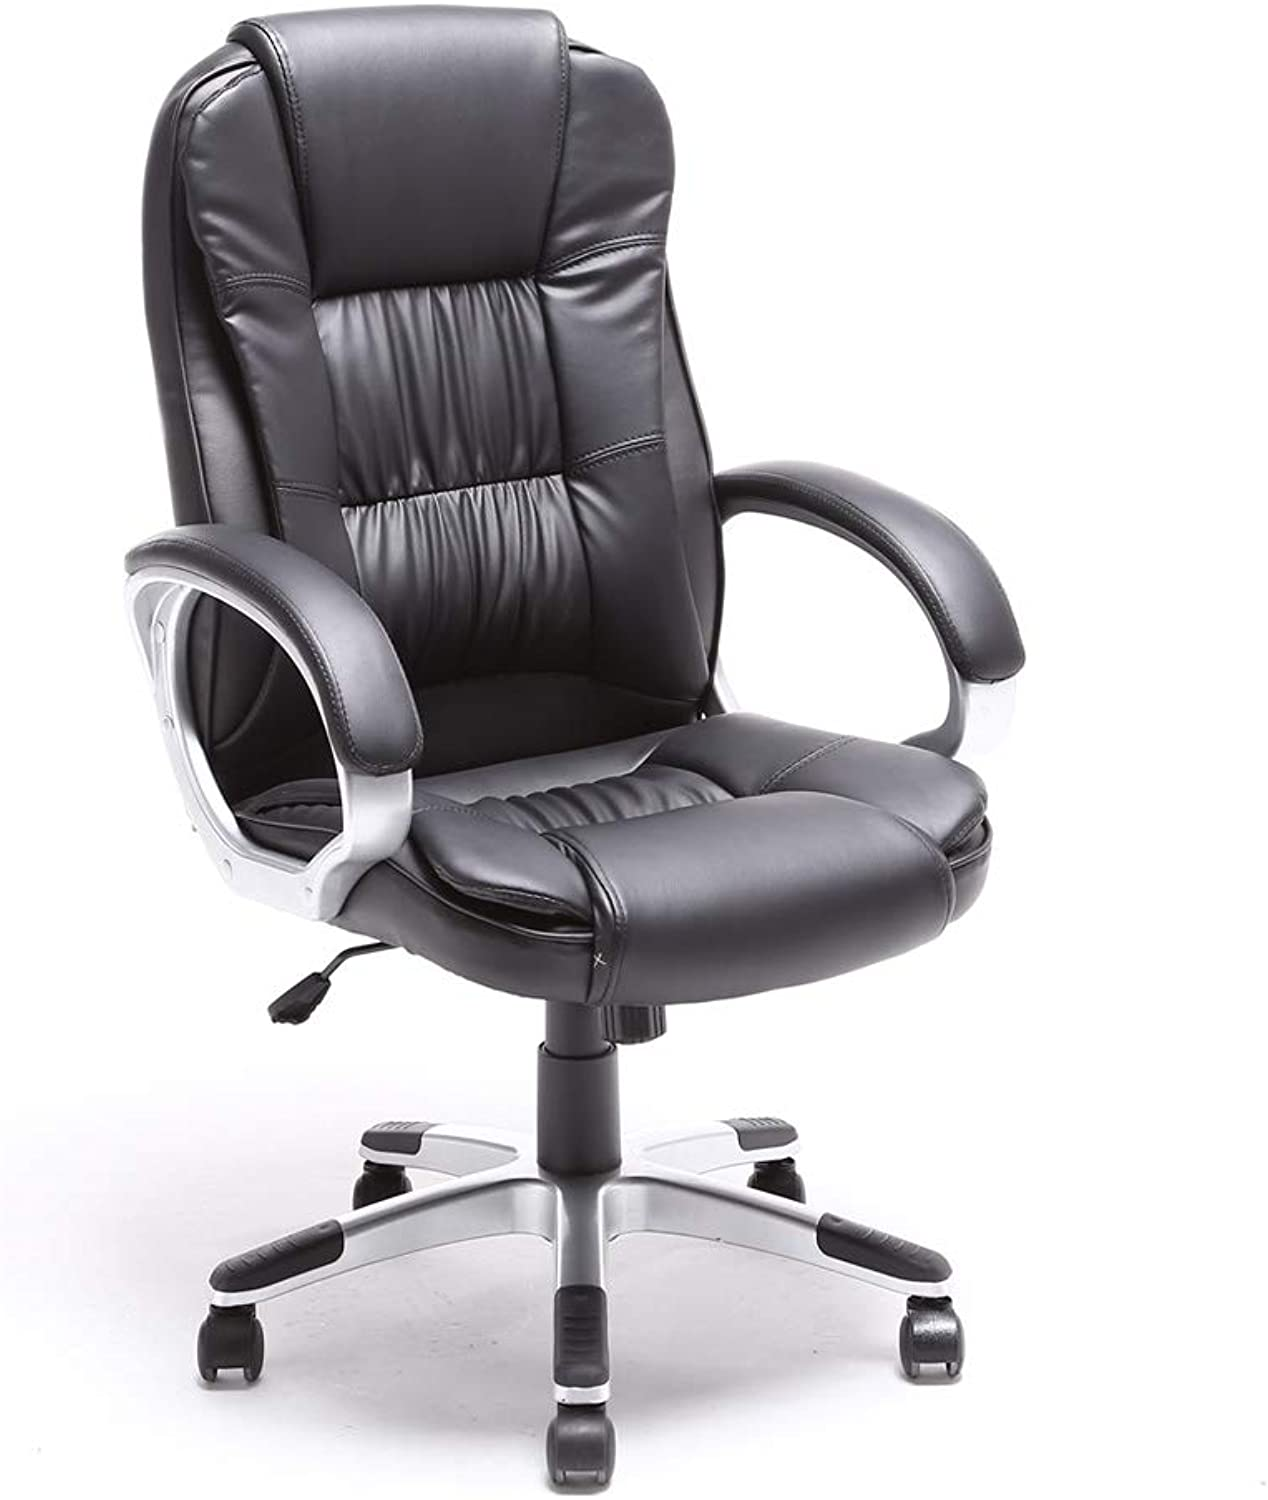 ALEKO ALC2216BL High Back Office Chair Ergonomic Computer Desk Chair Black PU Leather